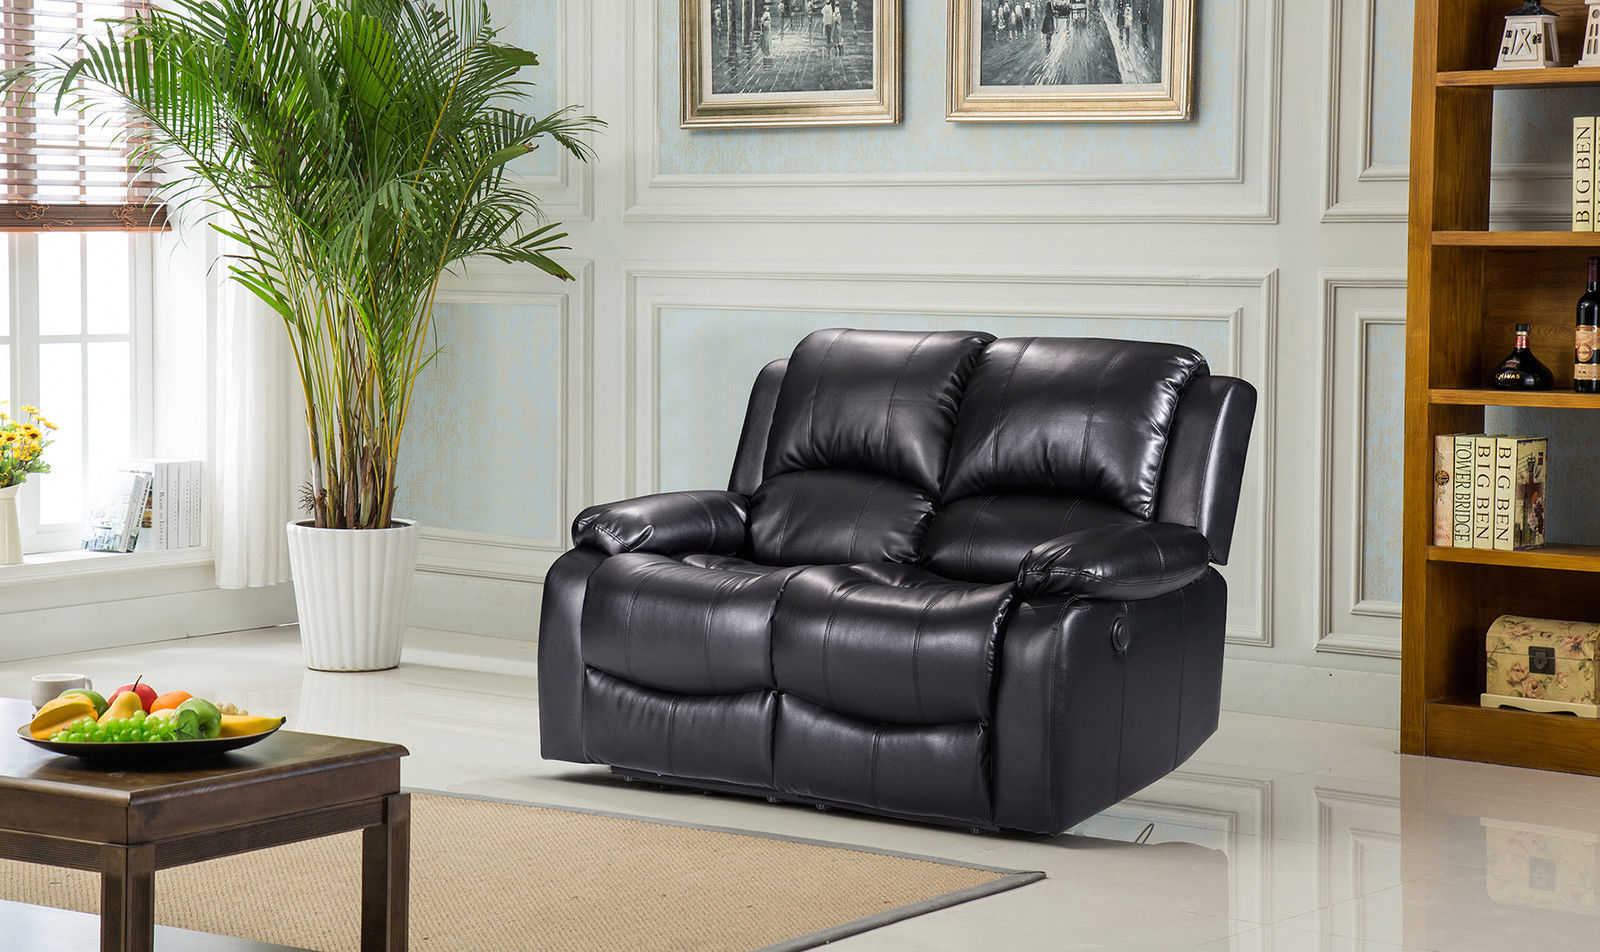 Outstanding New Valencia 2 Seater Leather Recliner Sofa Black Ibusinesslaw Wood Chair Design Ideas Ibusinesslaworg